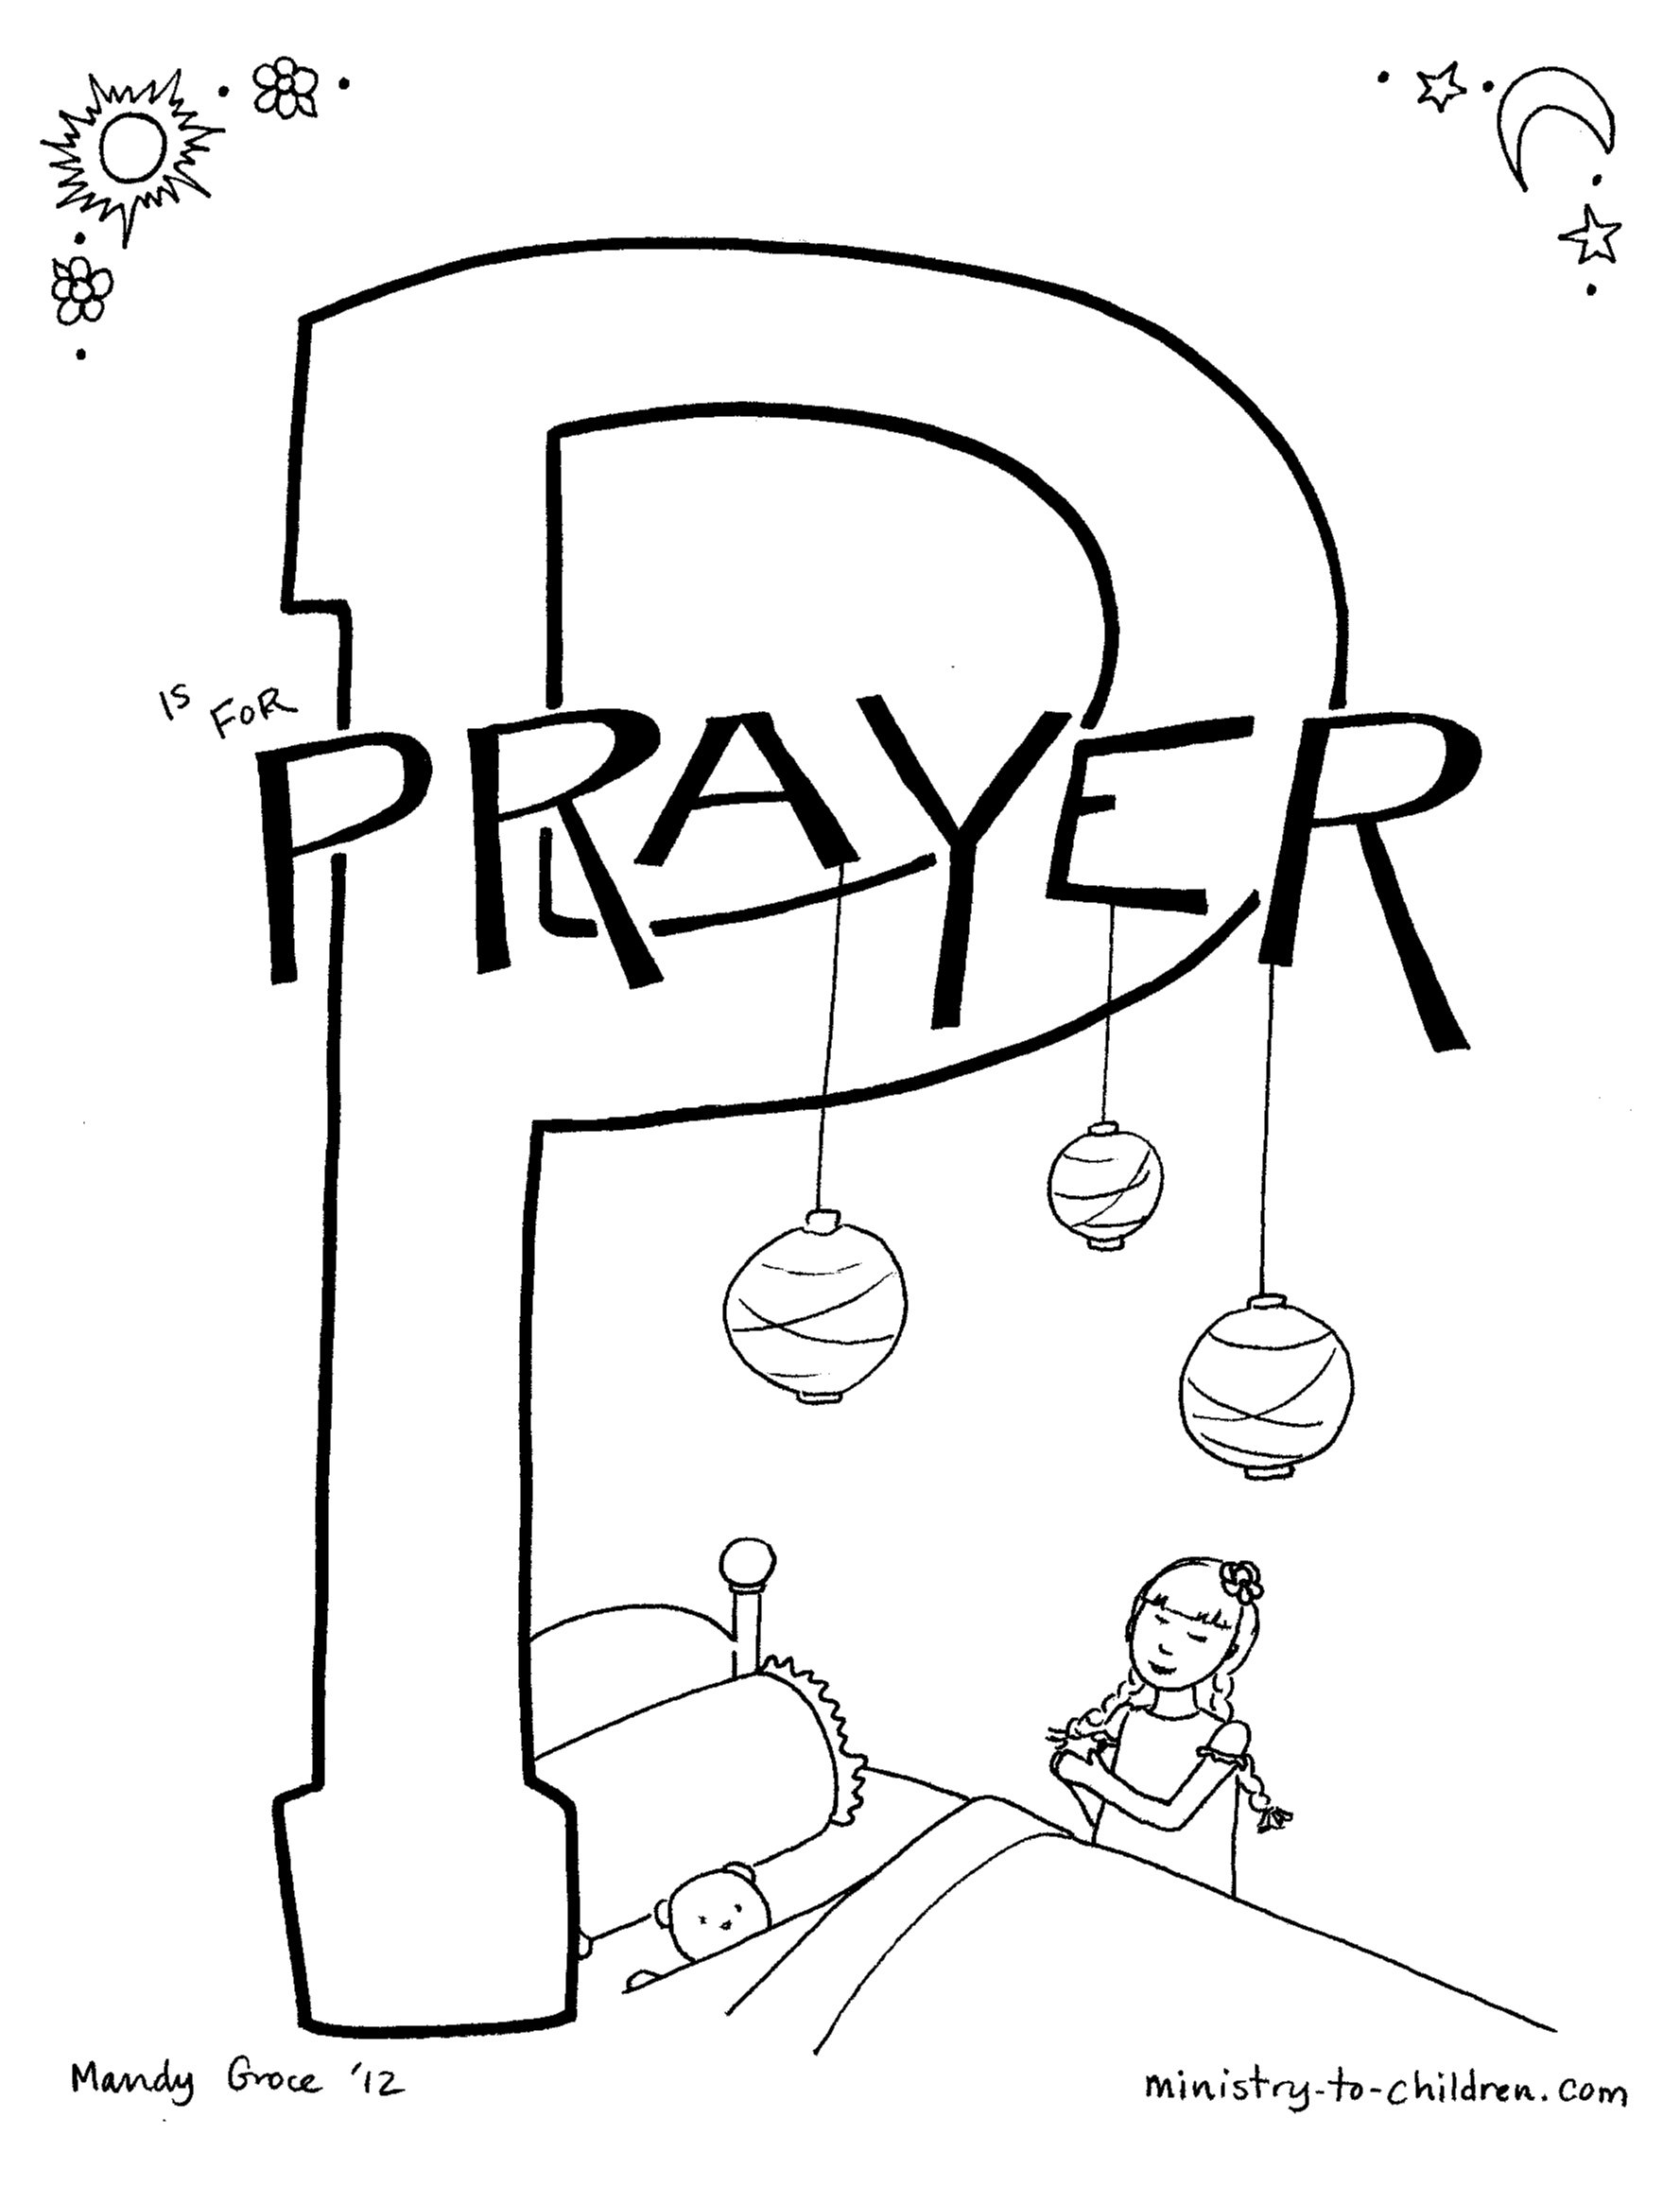 Hannah Bible Story Coloring Page - Coloring Home